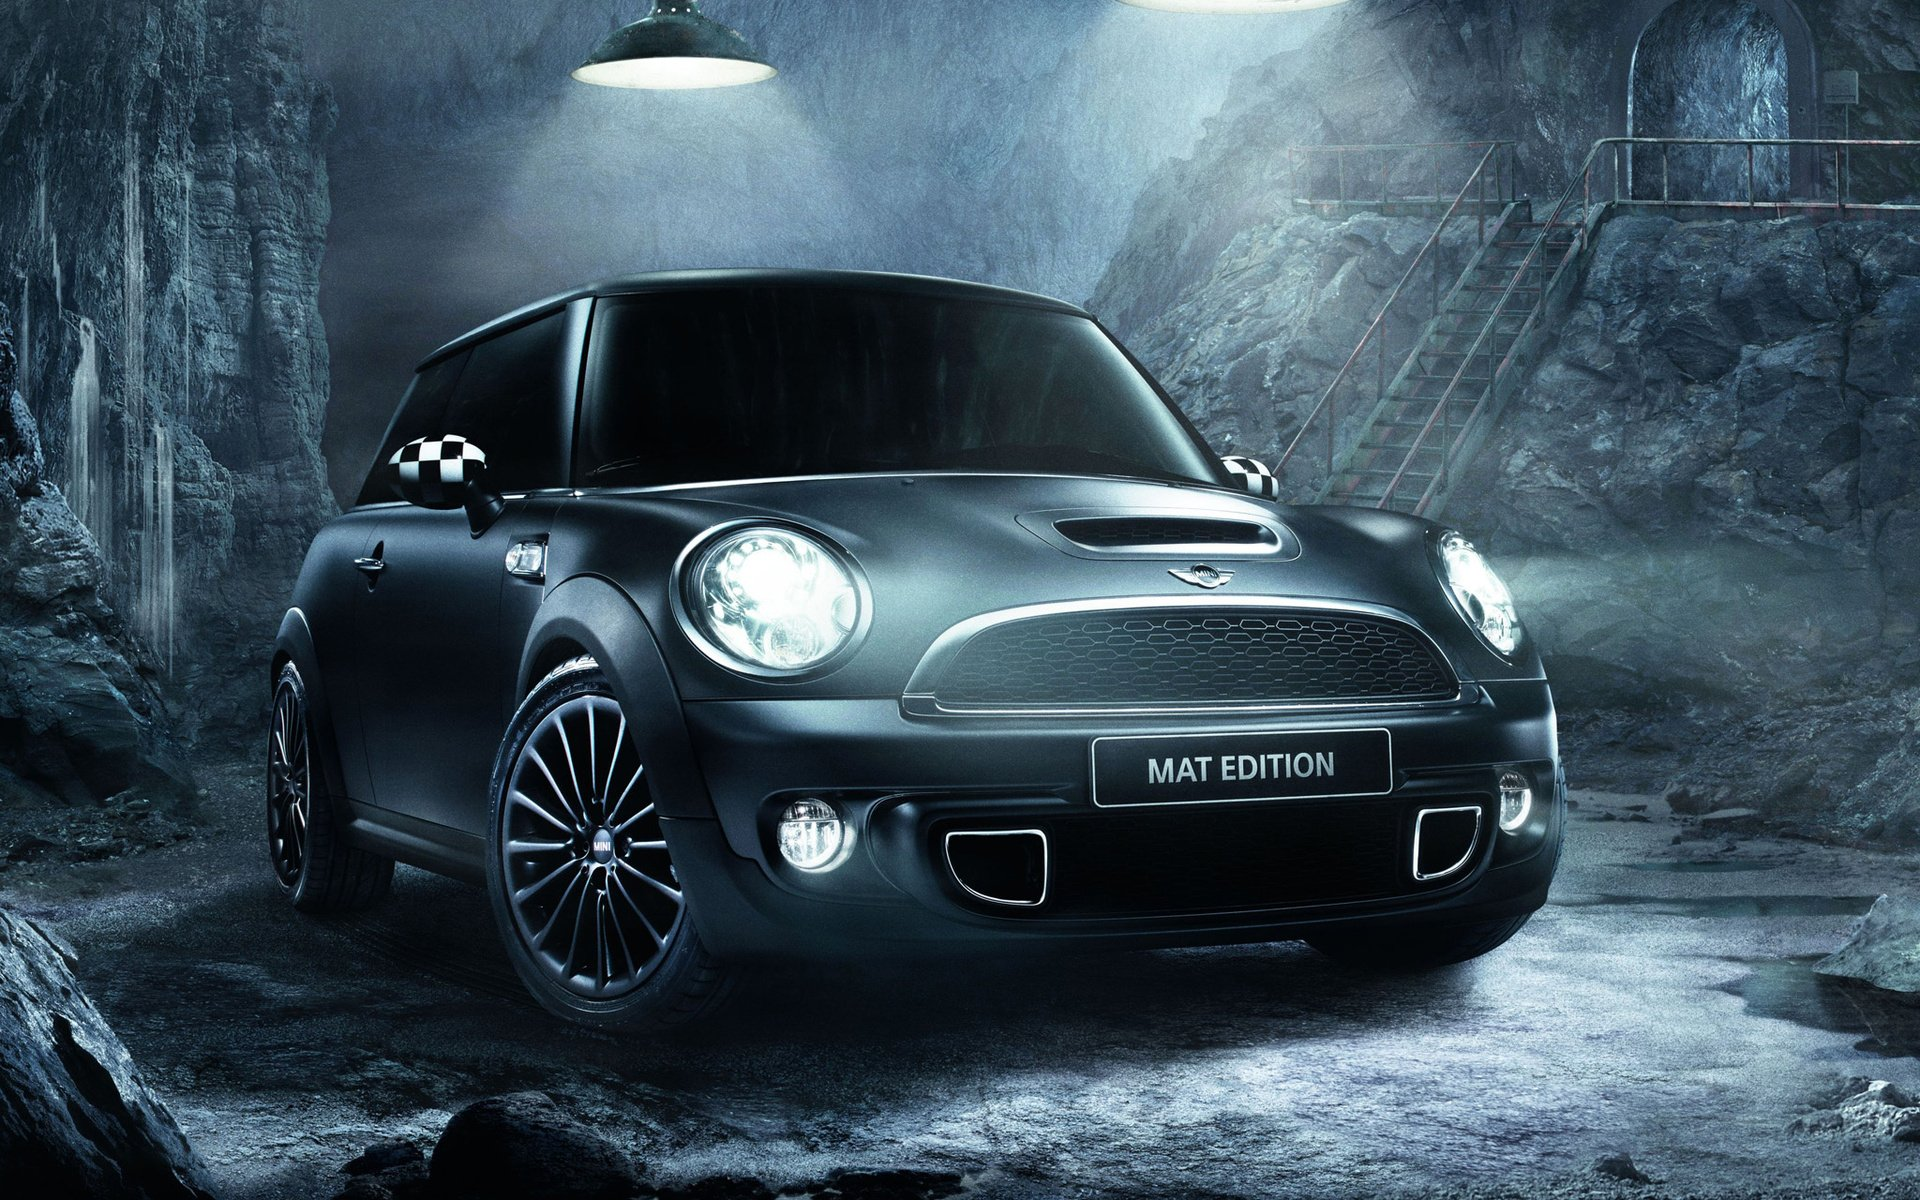 181 Mini Cooper HD Wallpapers Background Images 1920x1200